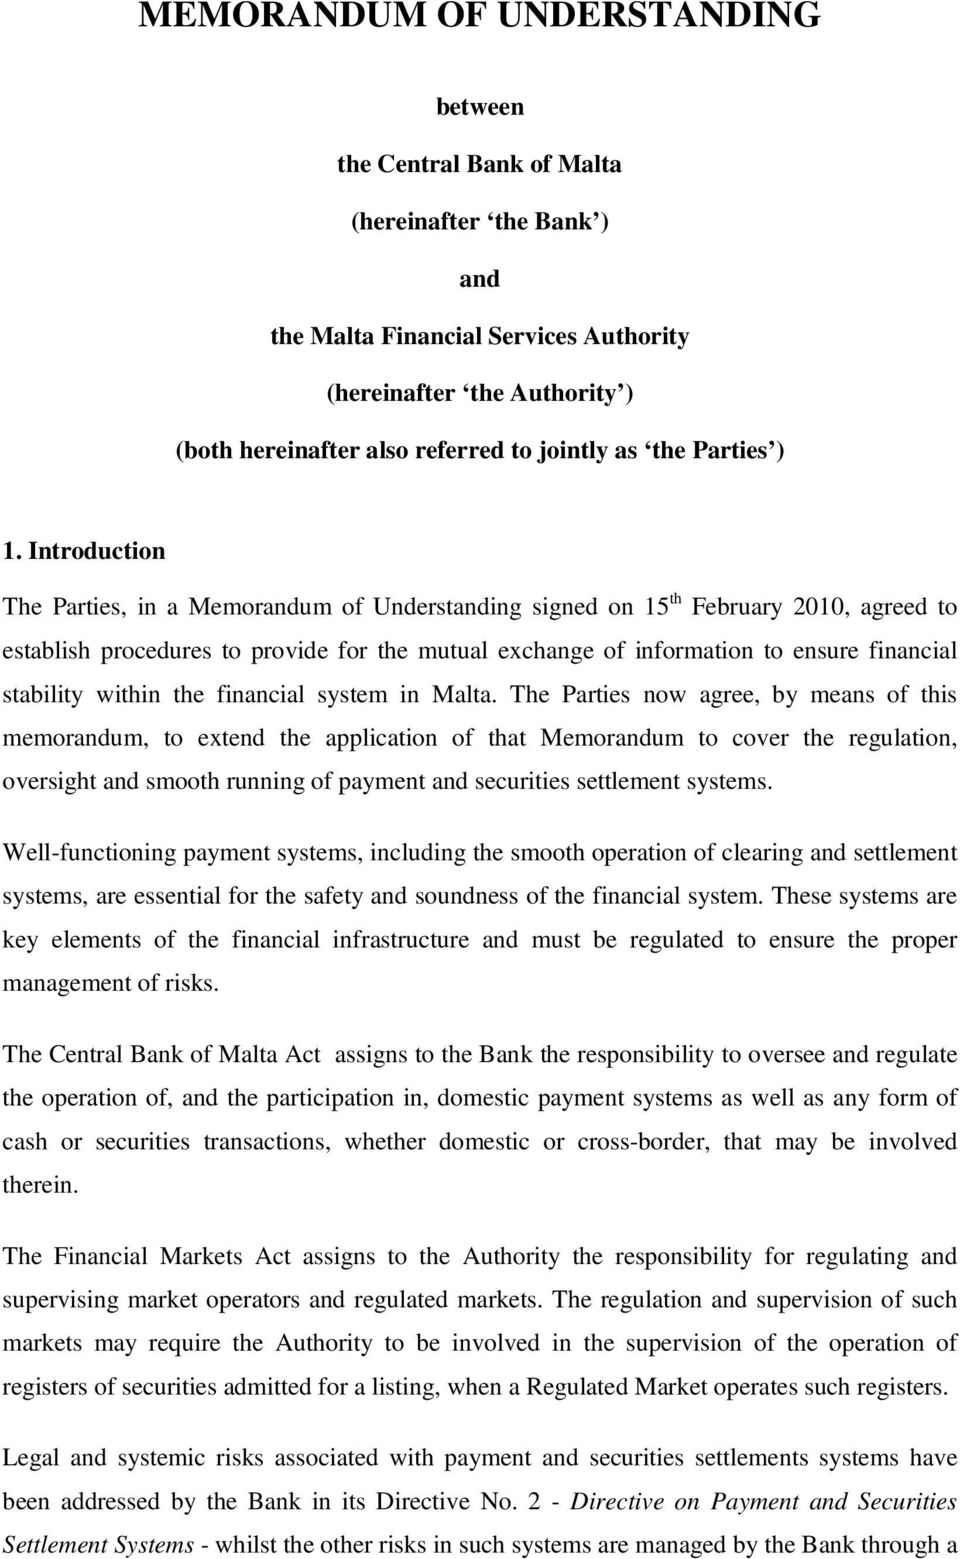 Introduction The Parties, in a Memorandum of Understanding signed on 15 th February 2010, agreed to establish procedures to provide for the mutual exchange of information to ensure financial